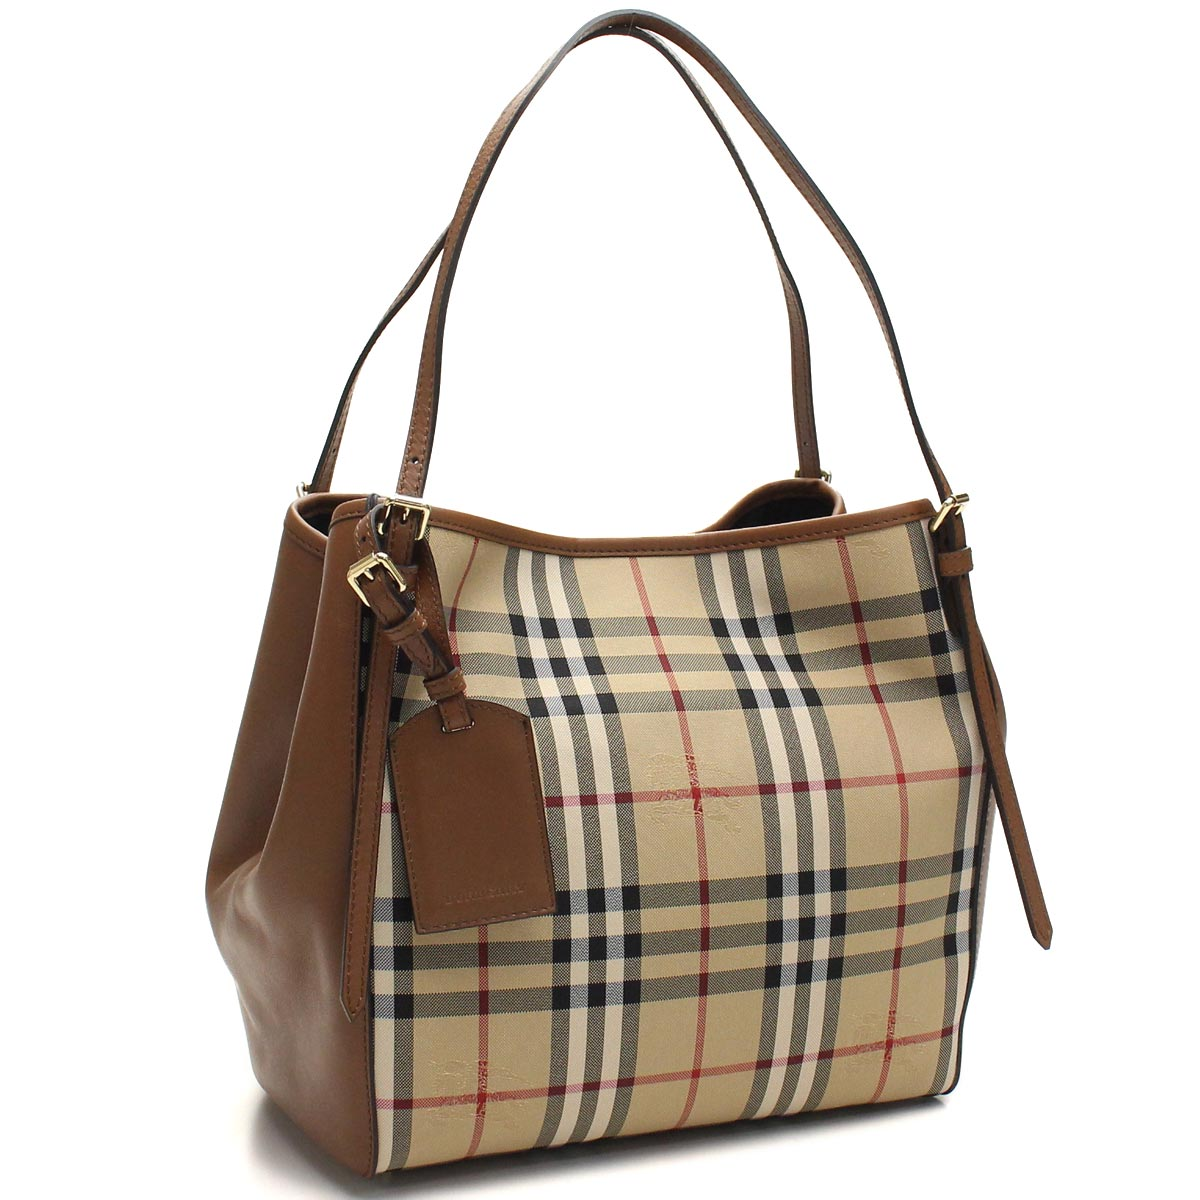 4a2f1c6e5a69 Bighit The total brand wholesale  Burberry (BURBERRY) tote bag 3939377 Brown  ONEA Tan( taxfree send by EMS authentic A brand new item )